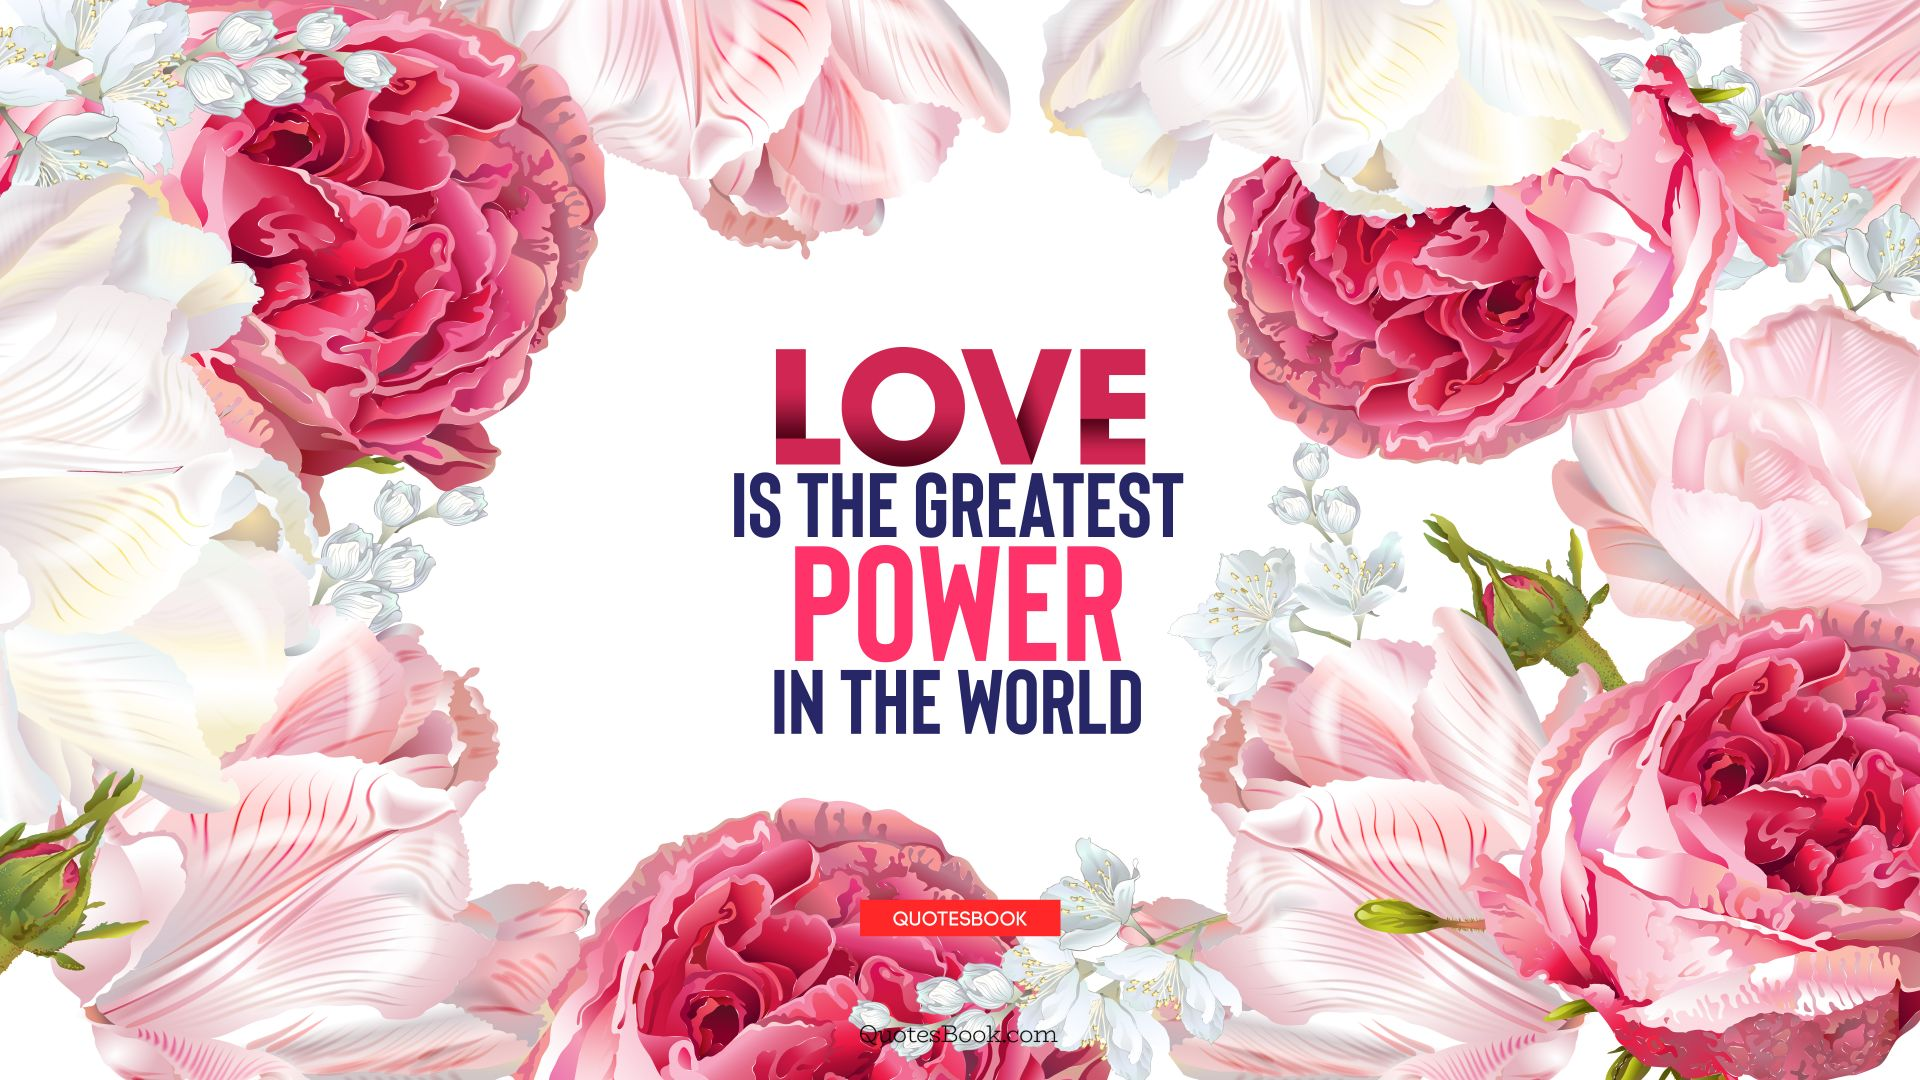 Love is the greatest power in the world. - Quote by QuotesBook